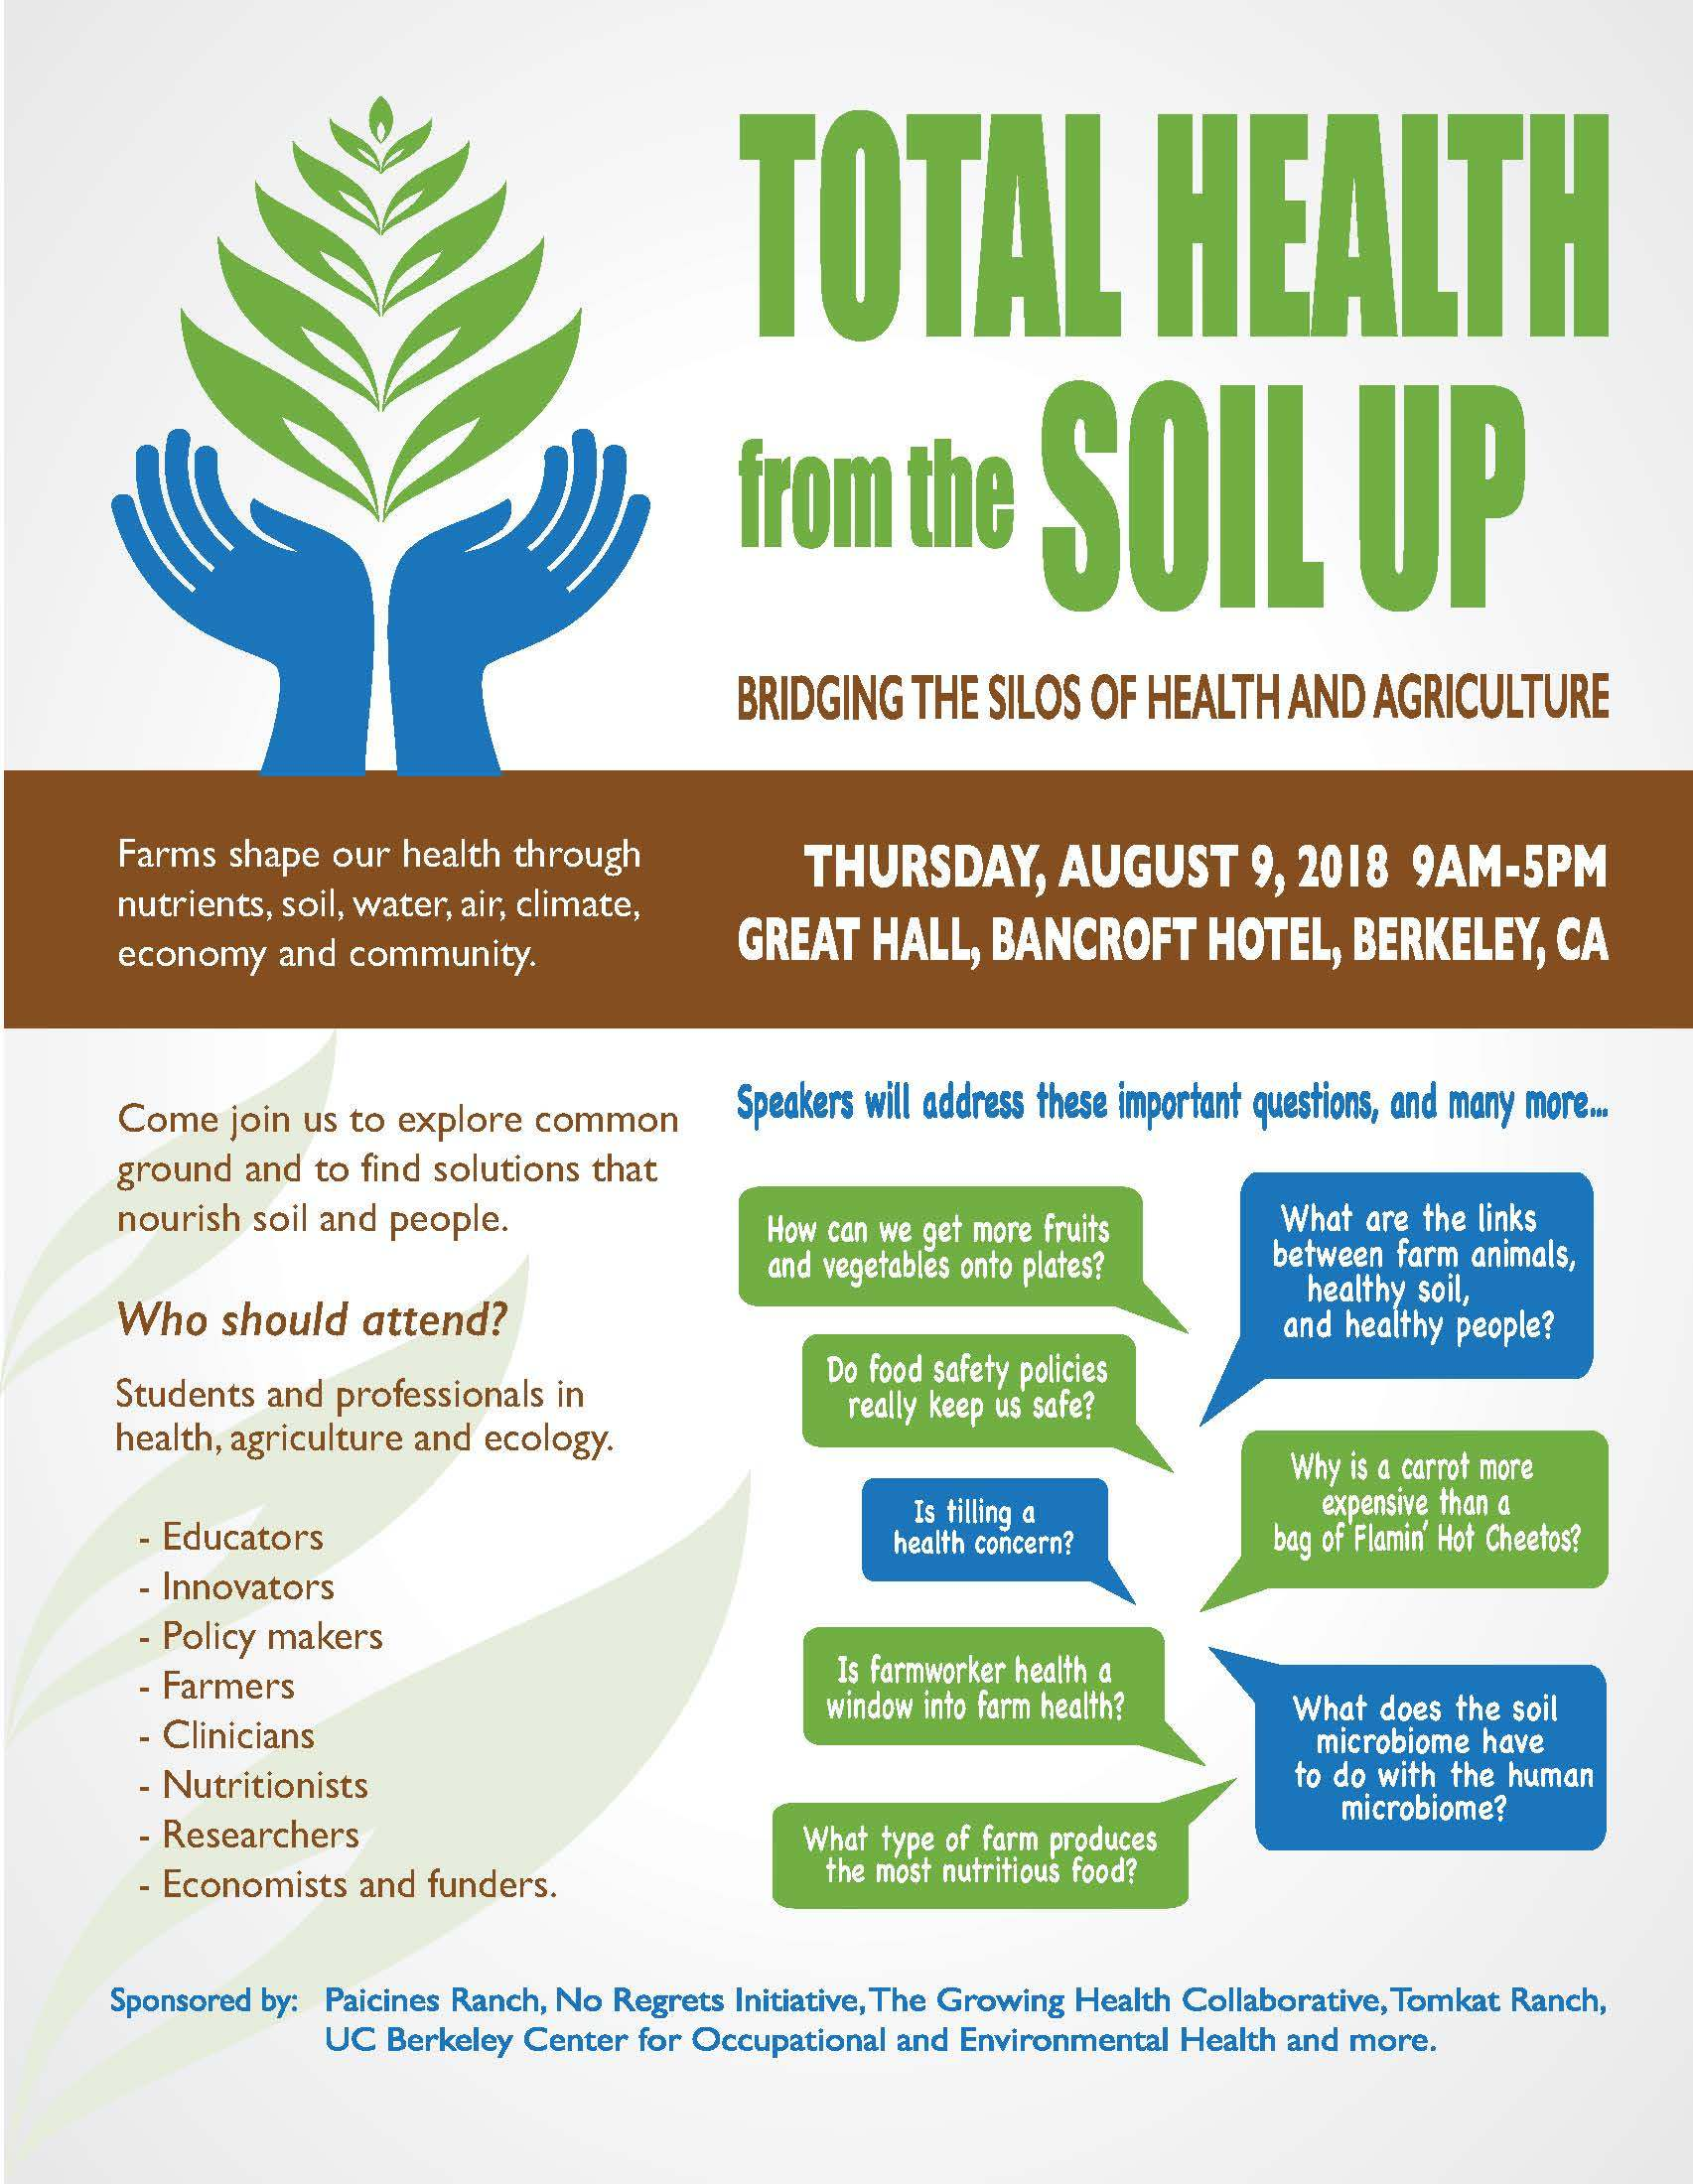 Total health from the soil up save the date flyer